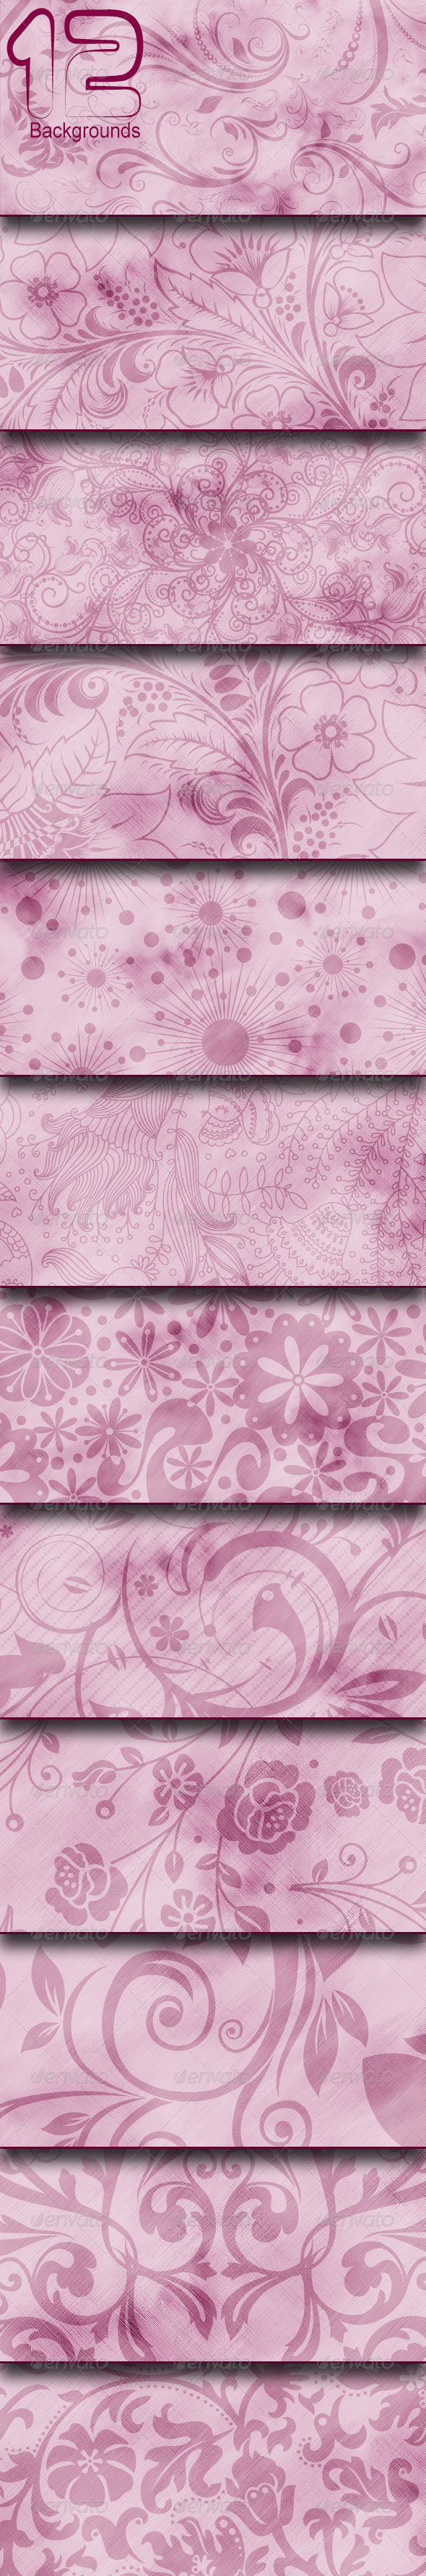 Flowers Backgrounds - Backgrounds Graphics